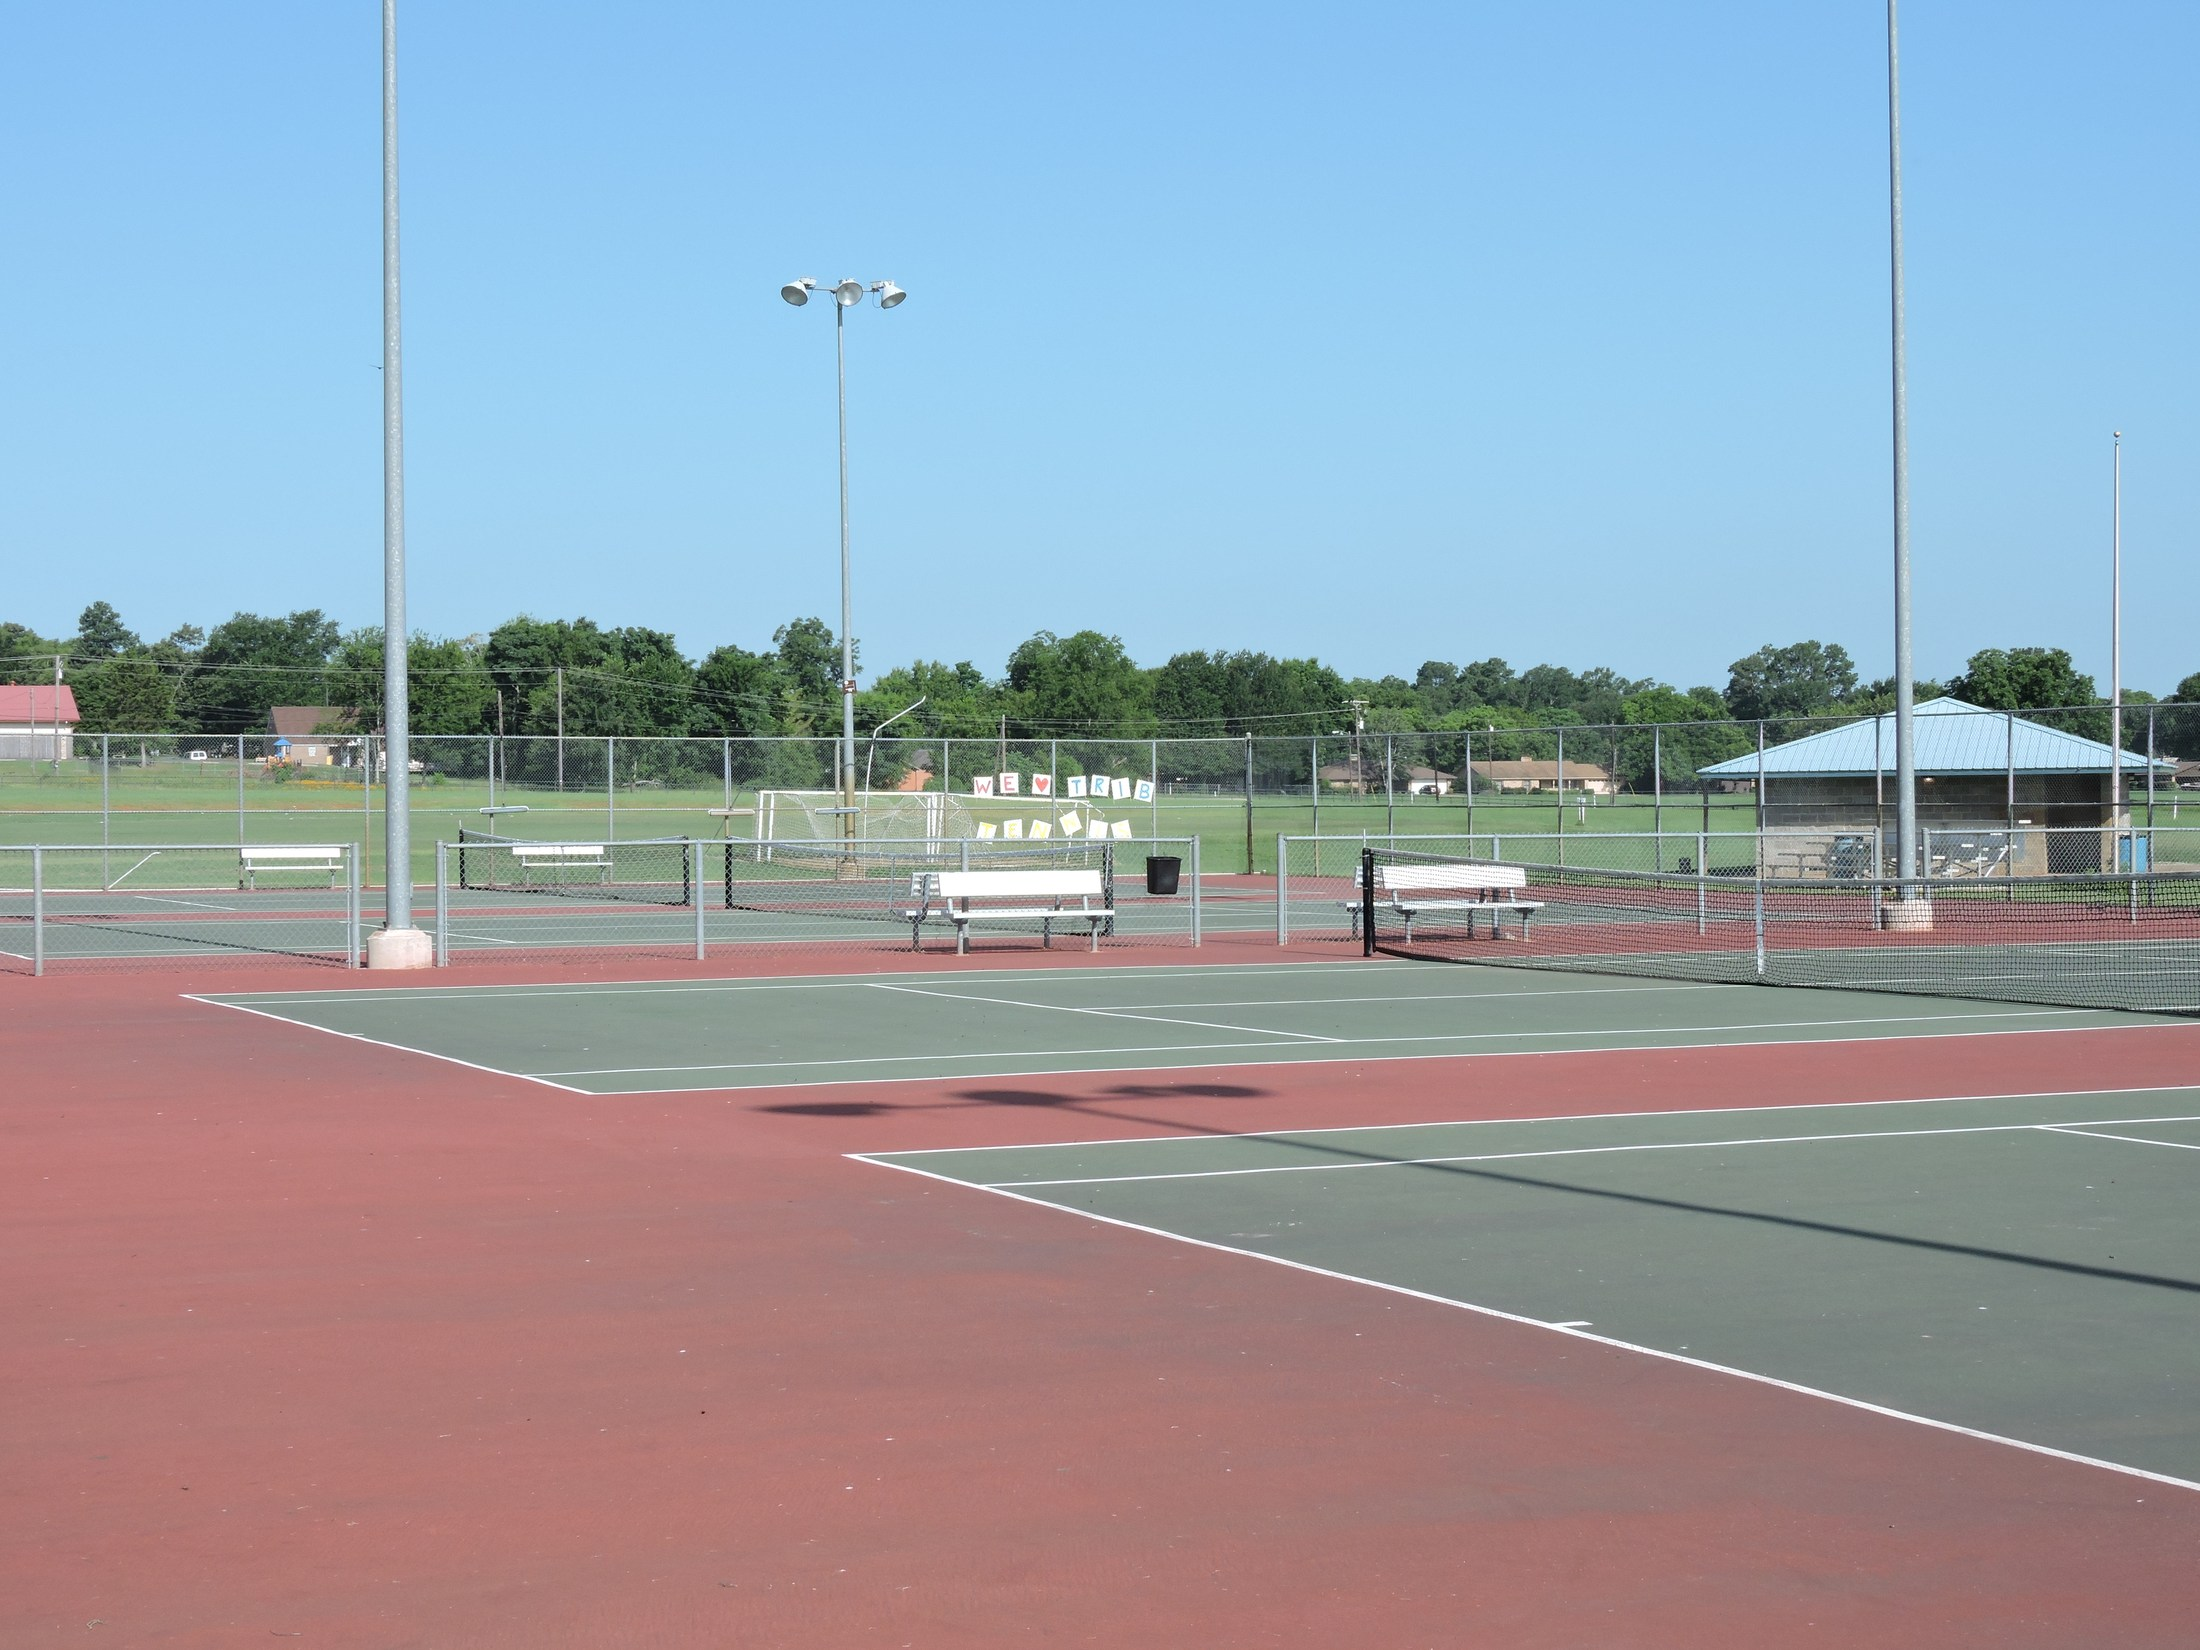 view of the tennis courts at JHS